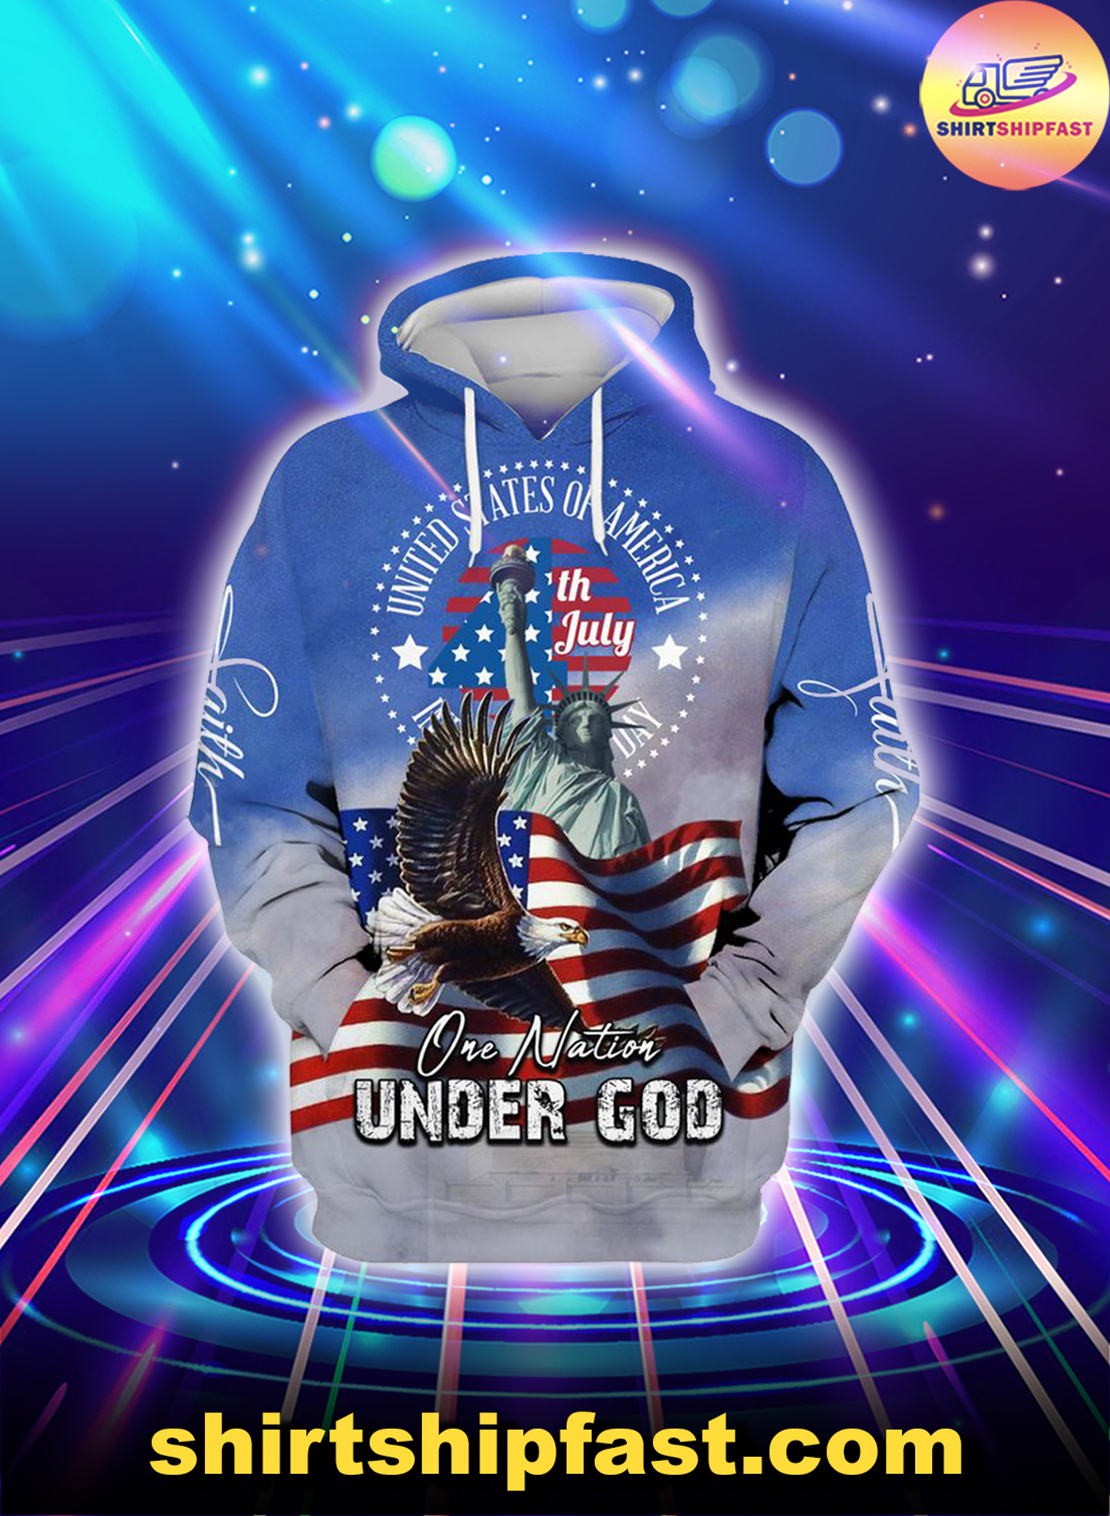 One nation under god united states of america 4th july hoodie